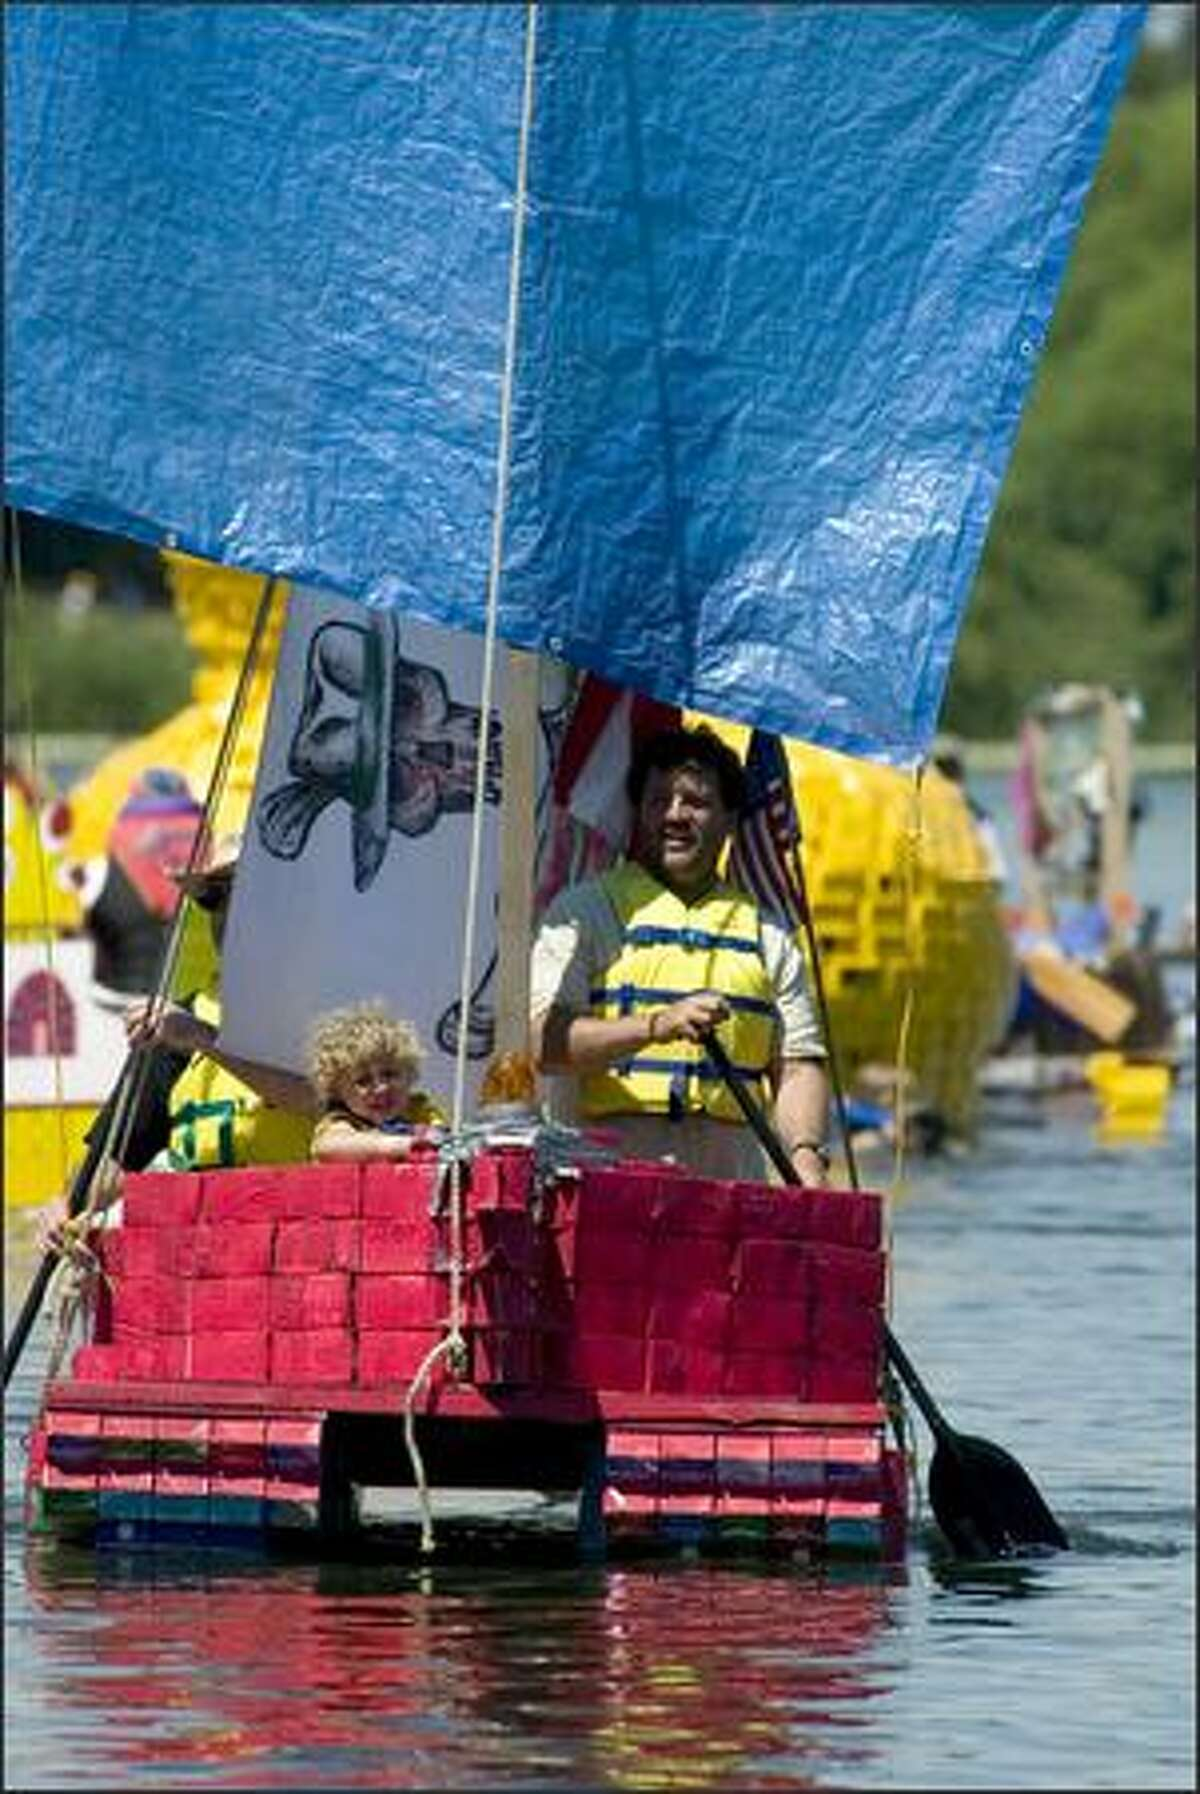 Boaters row towards the finish line in the Seafair Baffle Gab Milk Carton Derby along the southwest shore of Green Lake in Seattle.